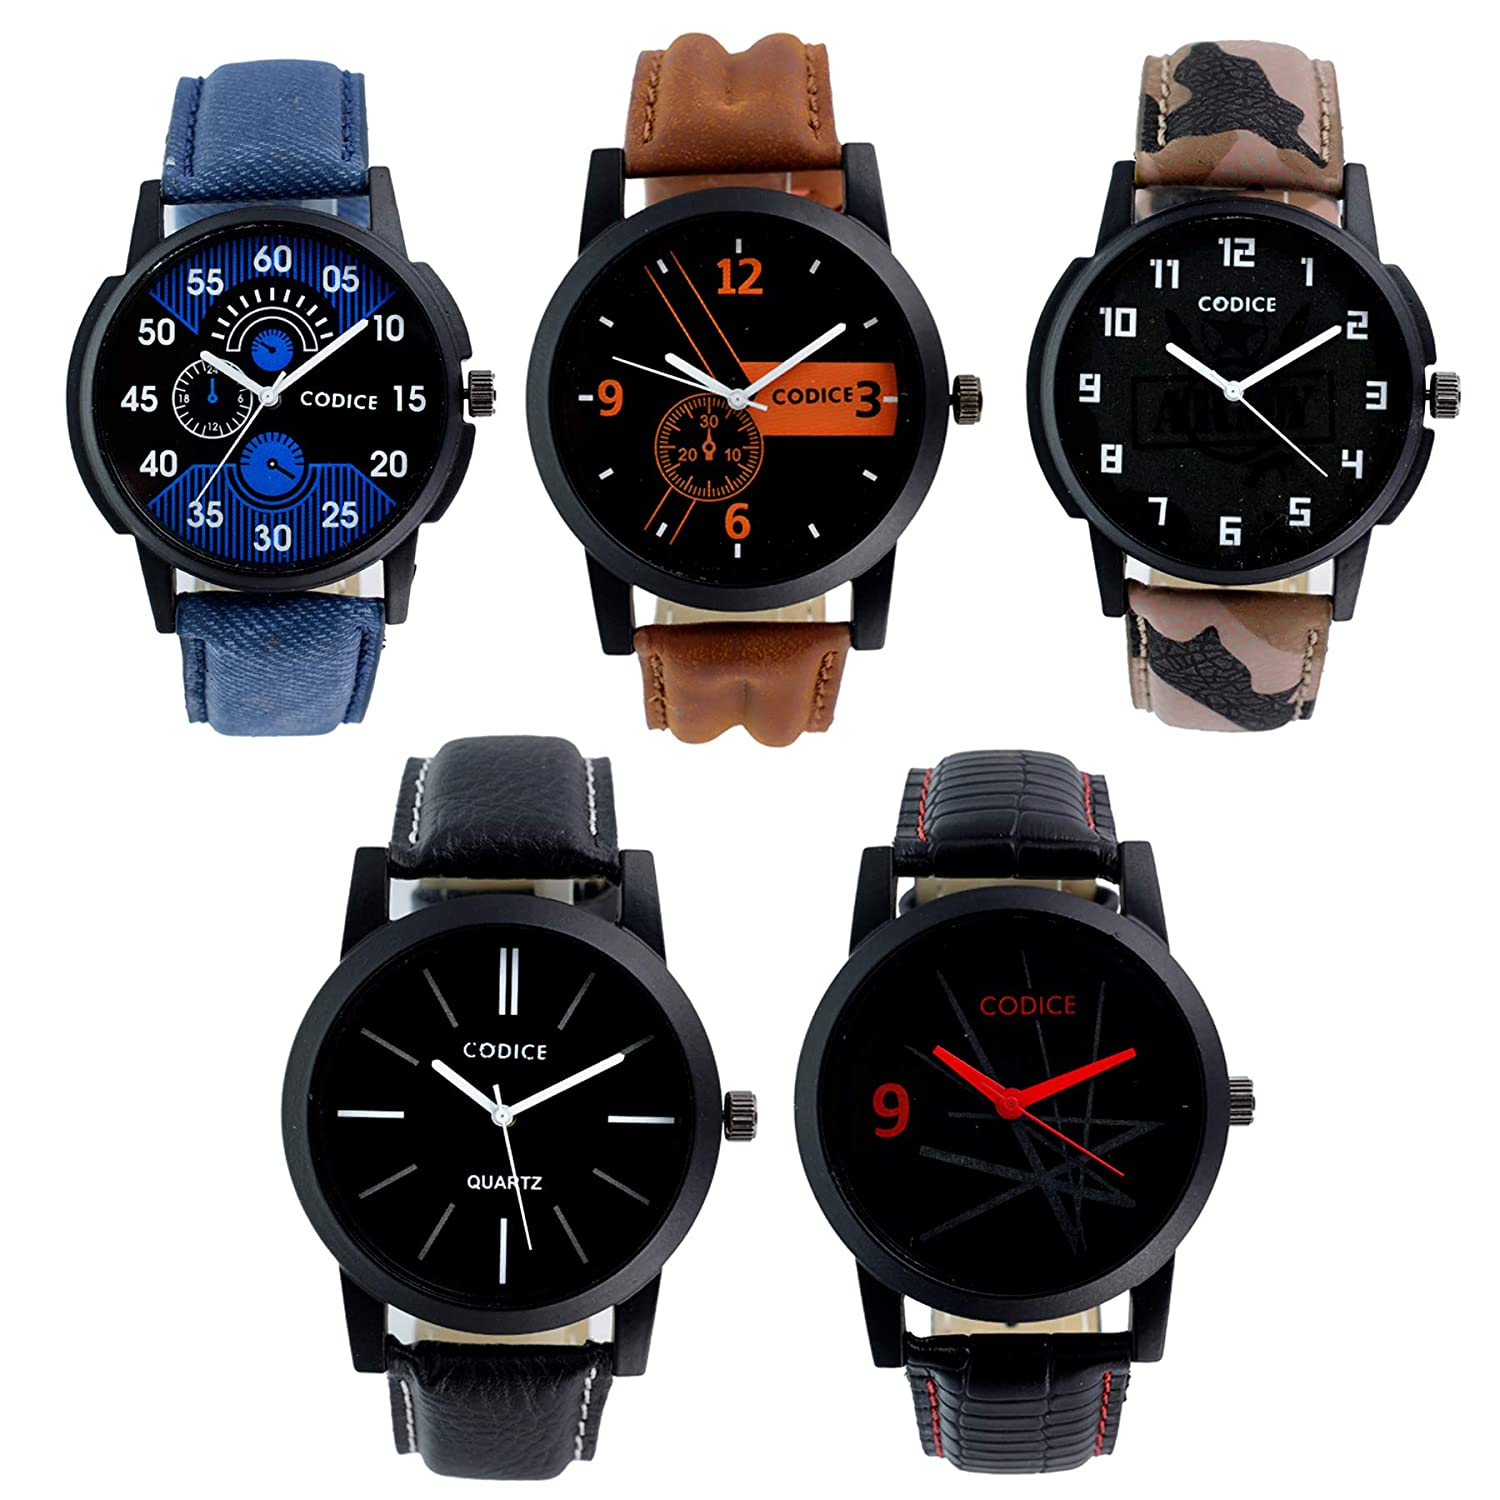 e8f125e0ea5 Buy Codice Analog Black Dial Men s Watch Combo(Set Of 5) Online at Low  Prices in India - Amazon.in